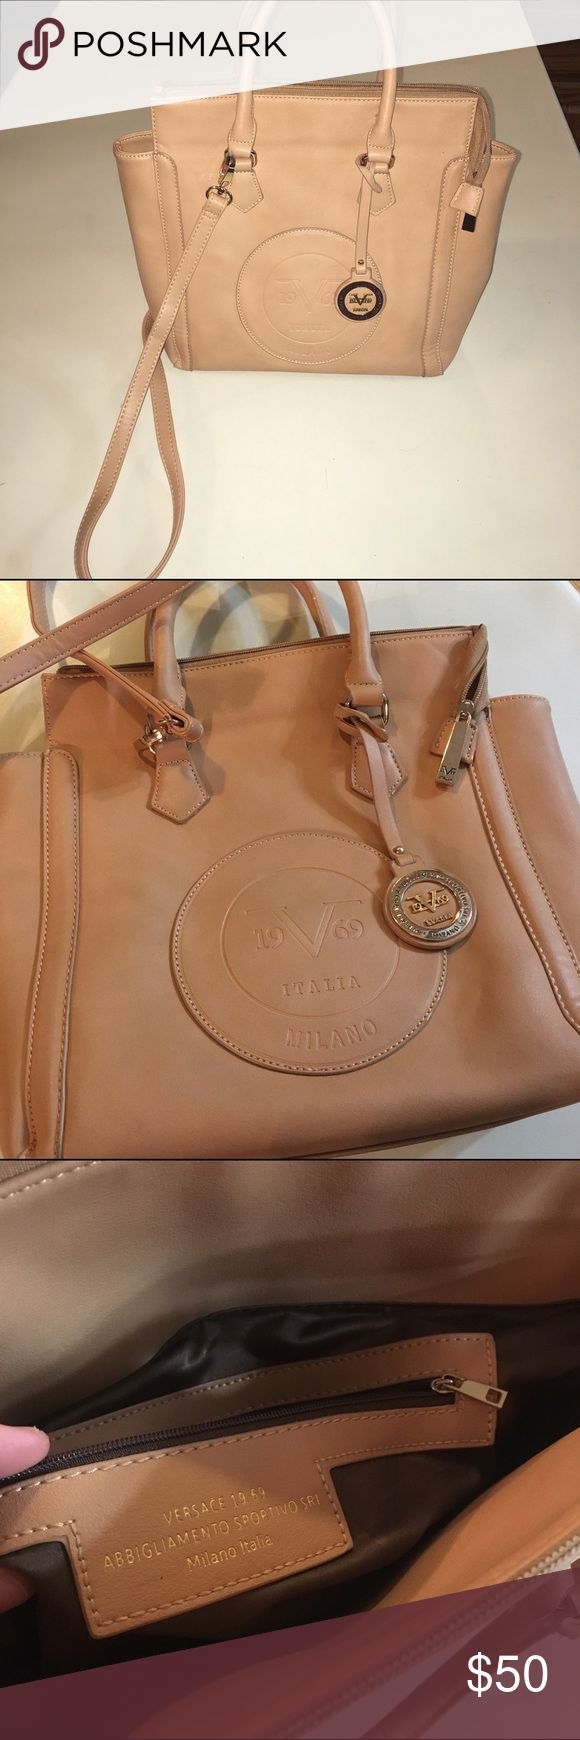 Versace 19.69 Abbigliamento Sportivo SRL crossbody Excellent condition!! Crossbody bag, but you can take the straps off! Super cute and a versatile color to go all year round! :) feel free to make an offer! Versace Bags Crossbody Bags